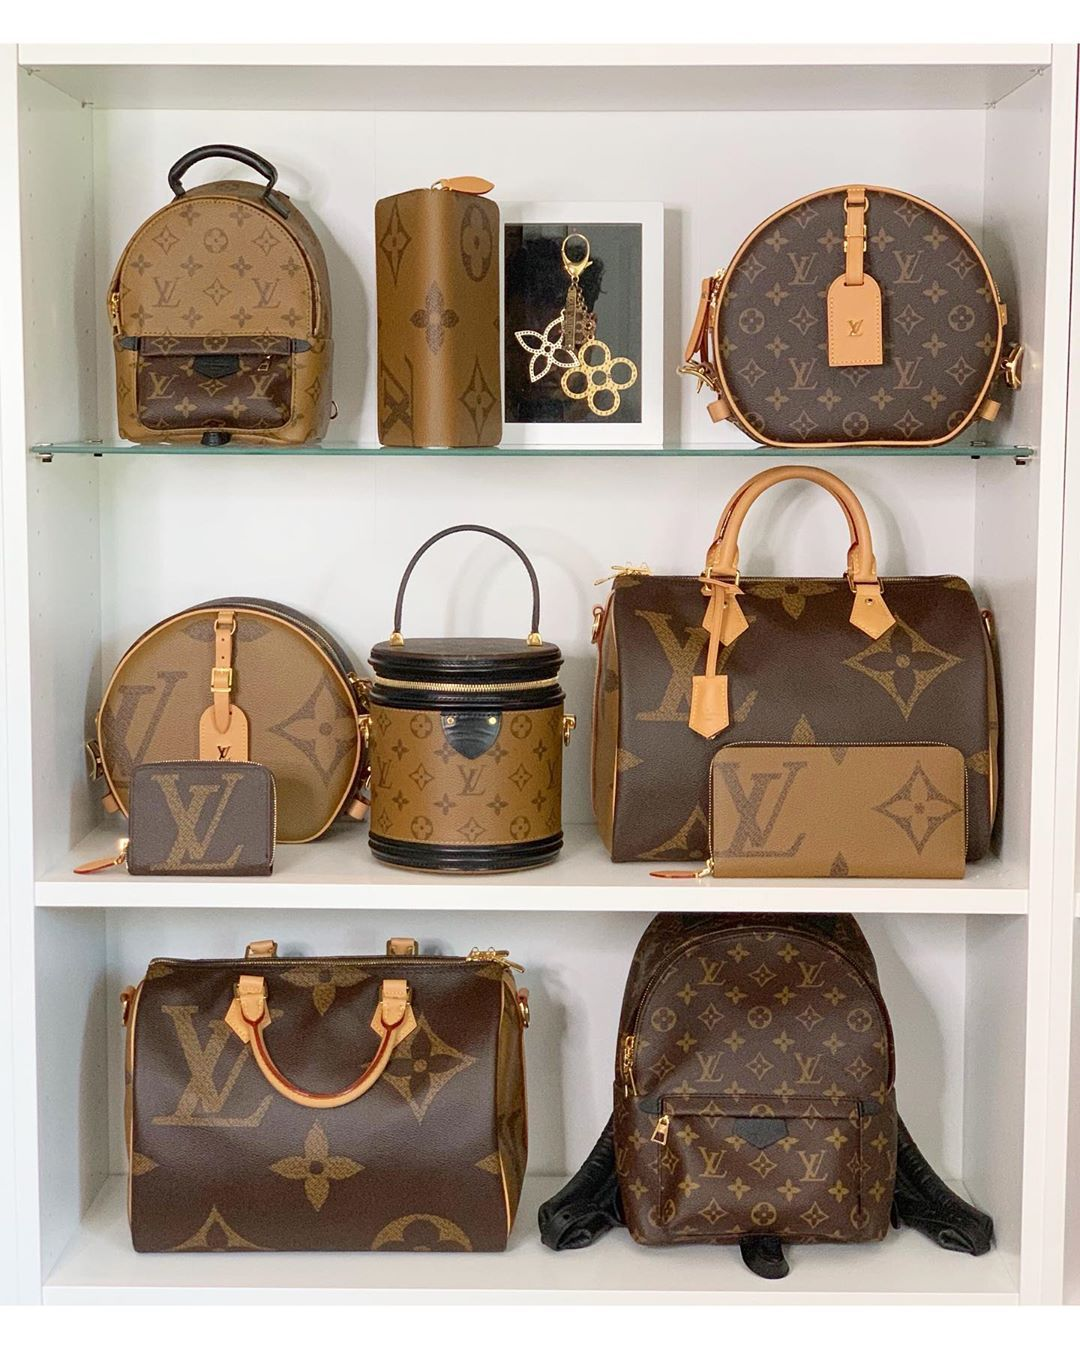 8 Louis Vuitton Reversed Monogram Bags #louisvuittonhandbags